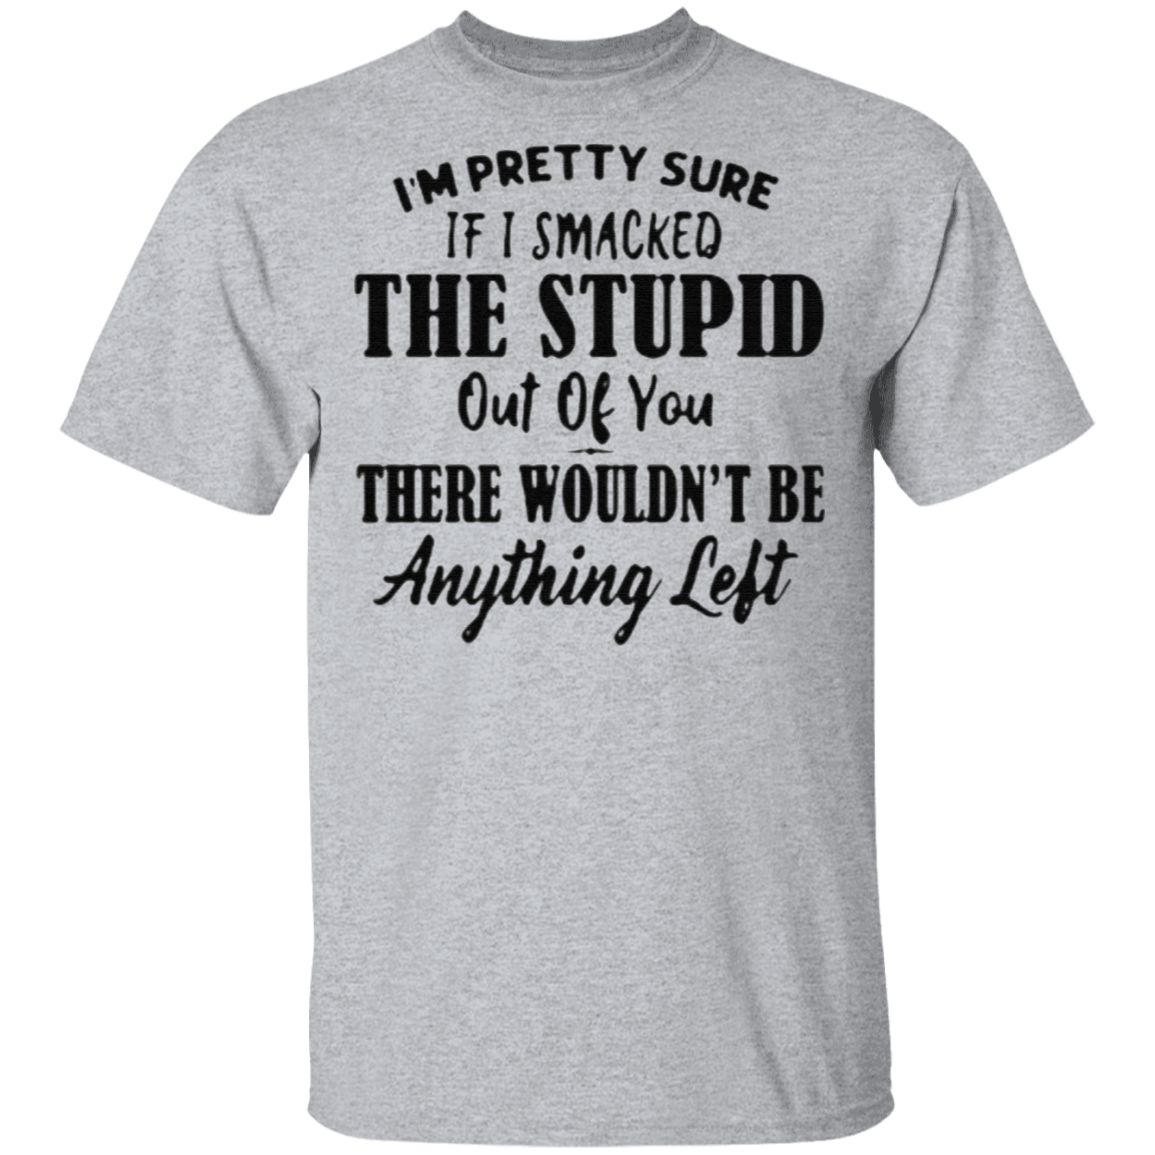 I'm Pretty Sure If I Smacked The Stupid Out Of You There Wouldn't Be Anything Left TShirt